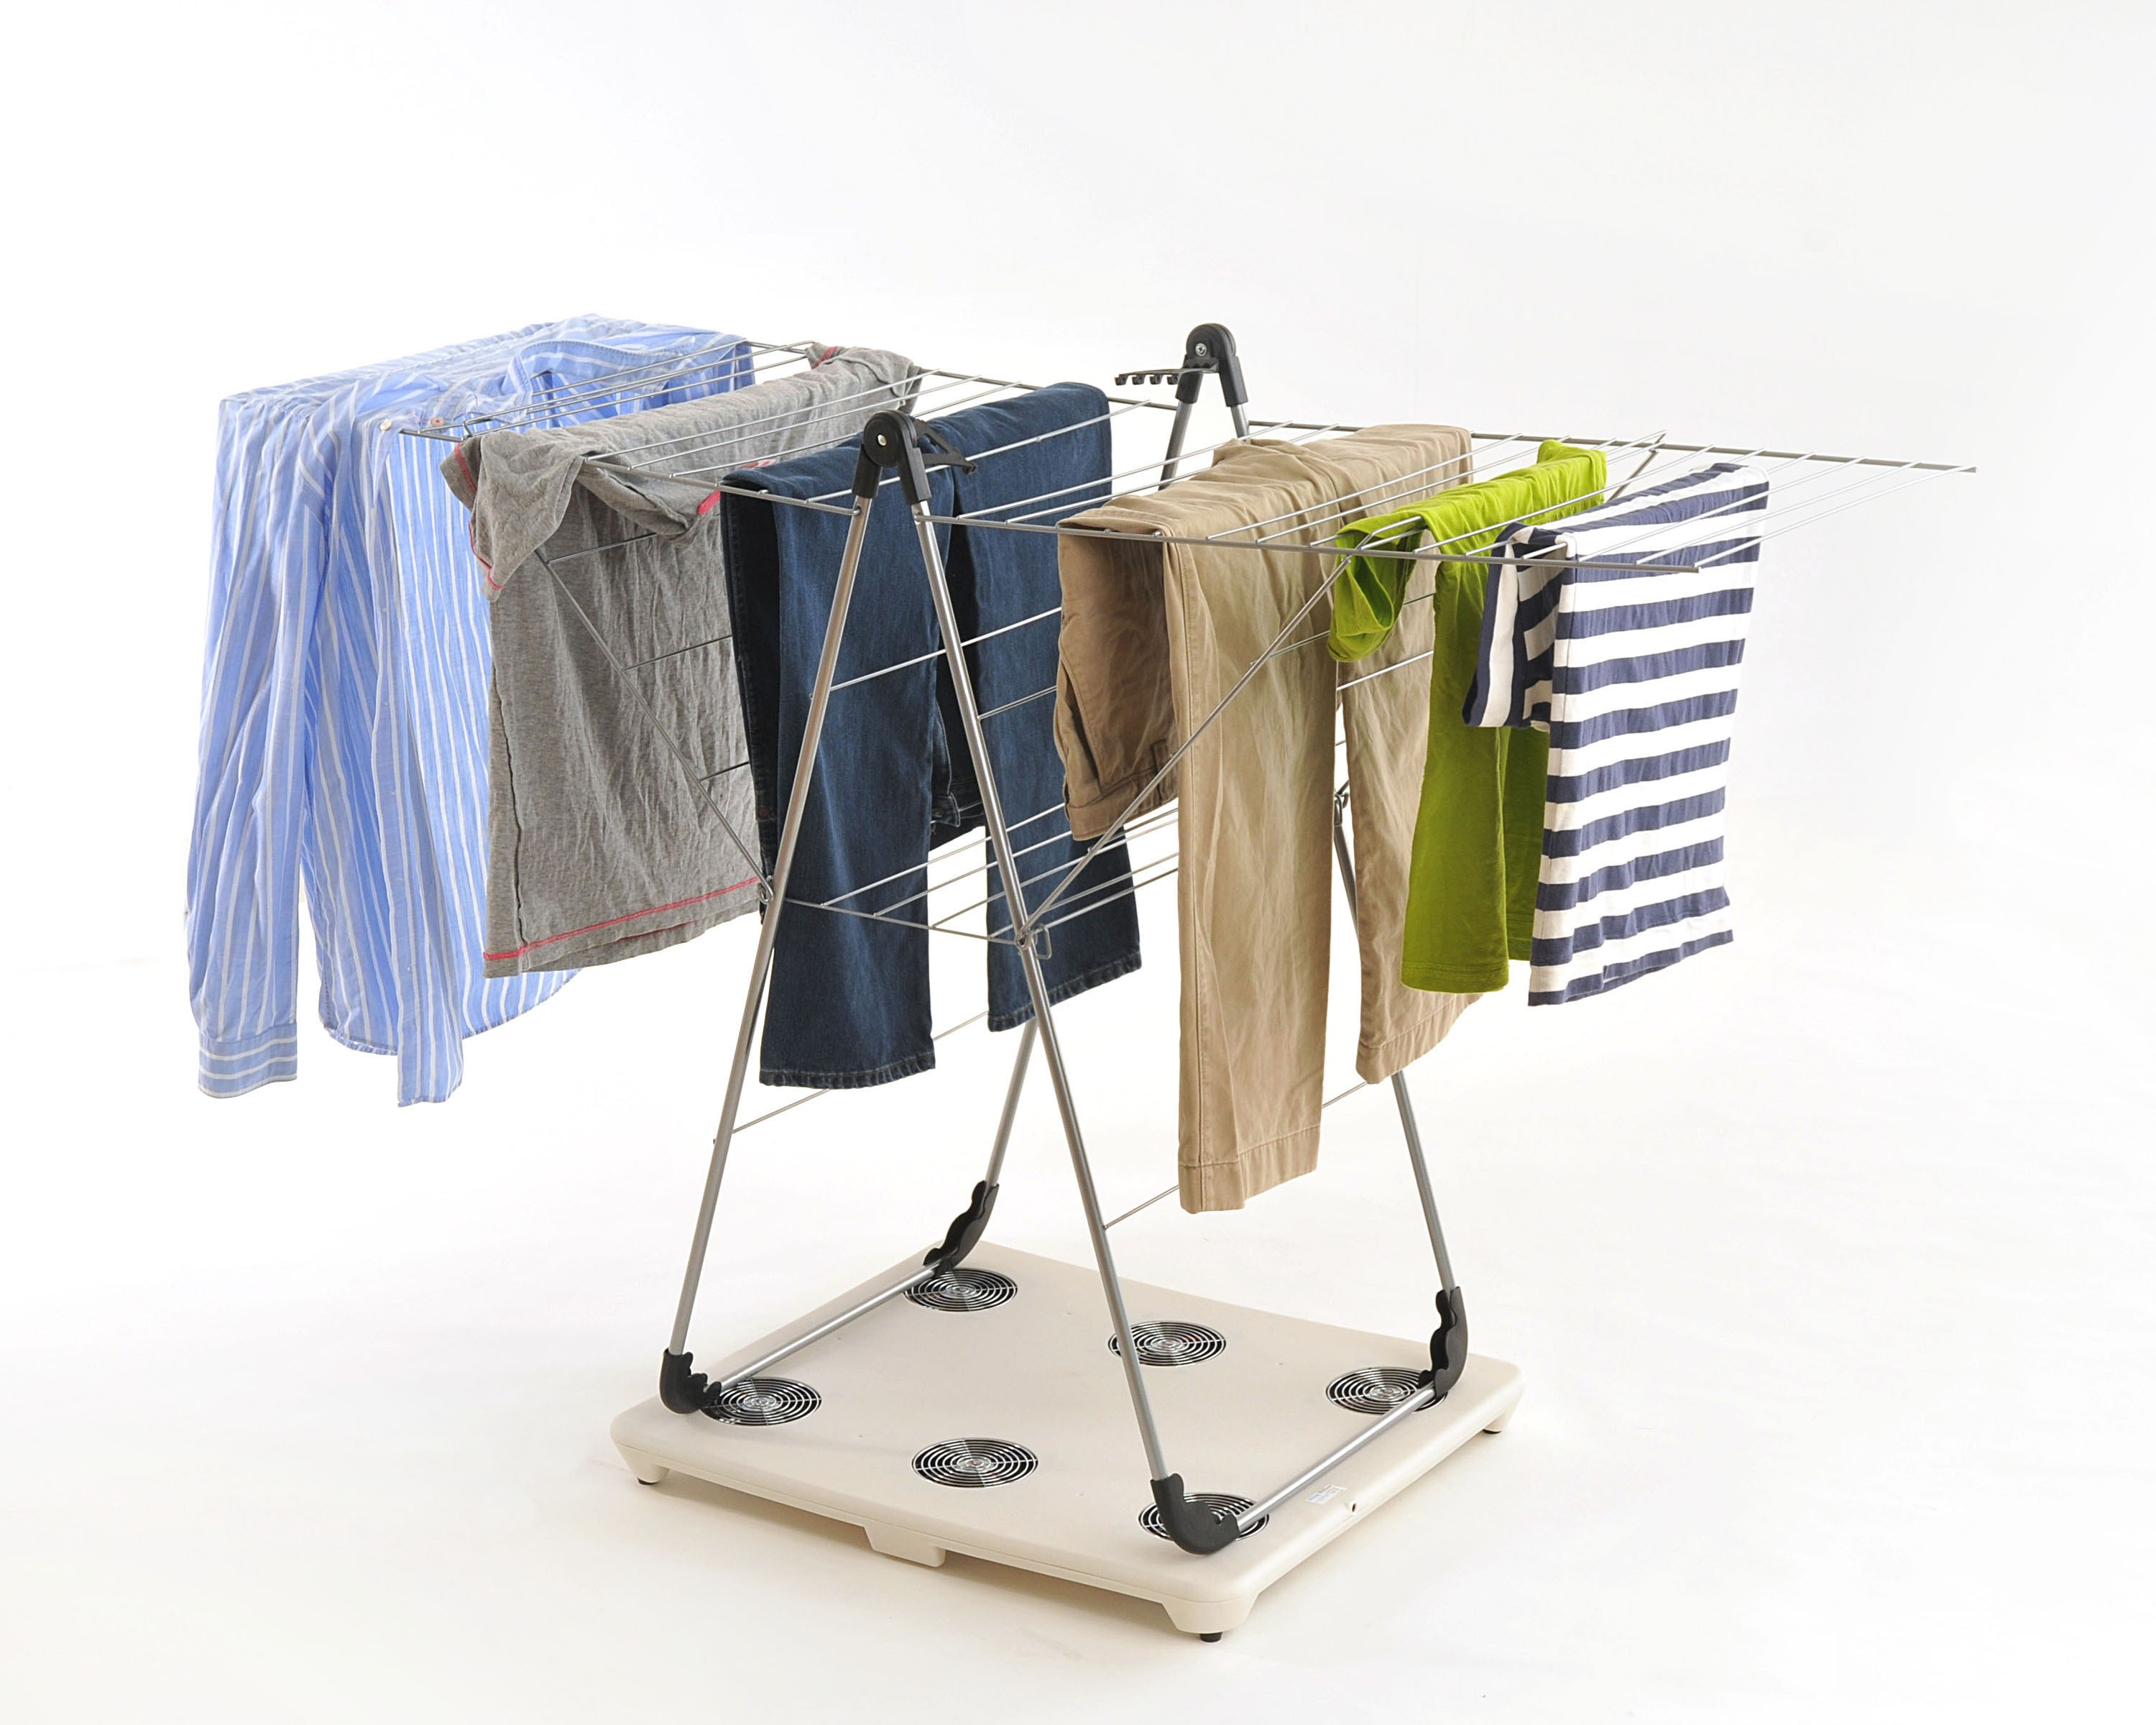 Dimplex Clothes Air Dryer Clothes Airers Amp Lines